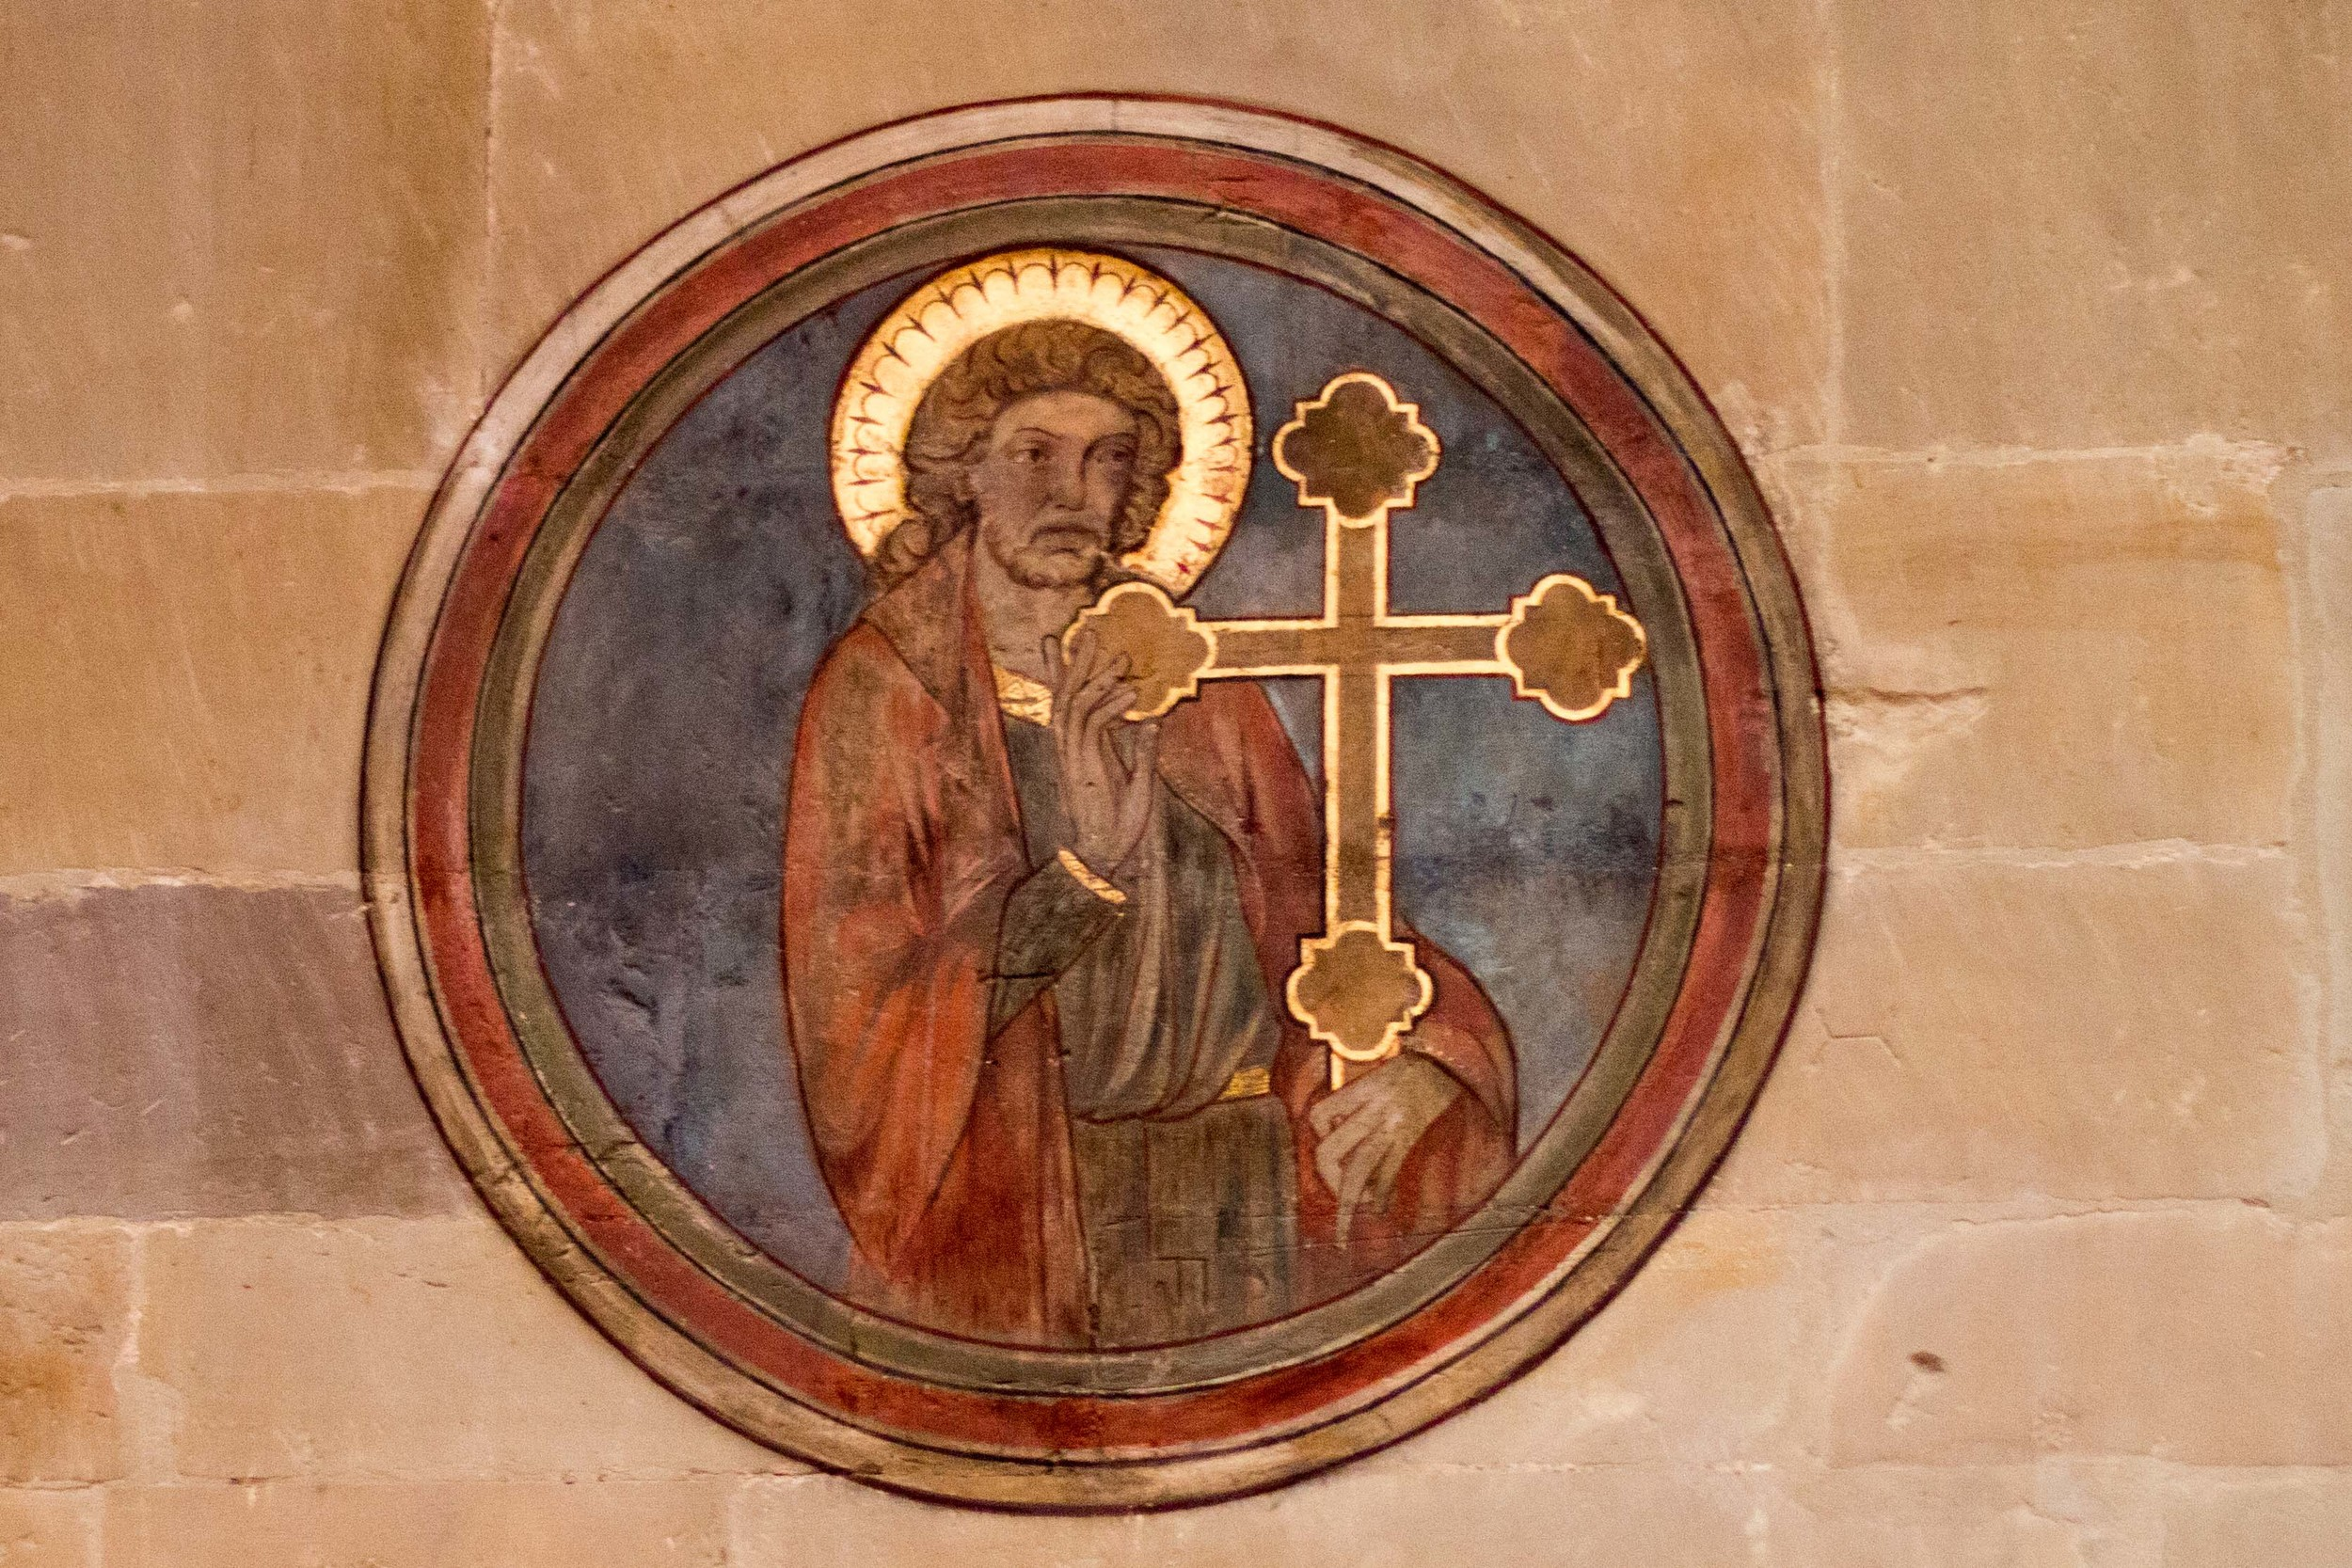 One of the many icons painted on the walls of the Church of our Lady